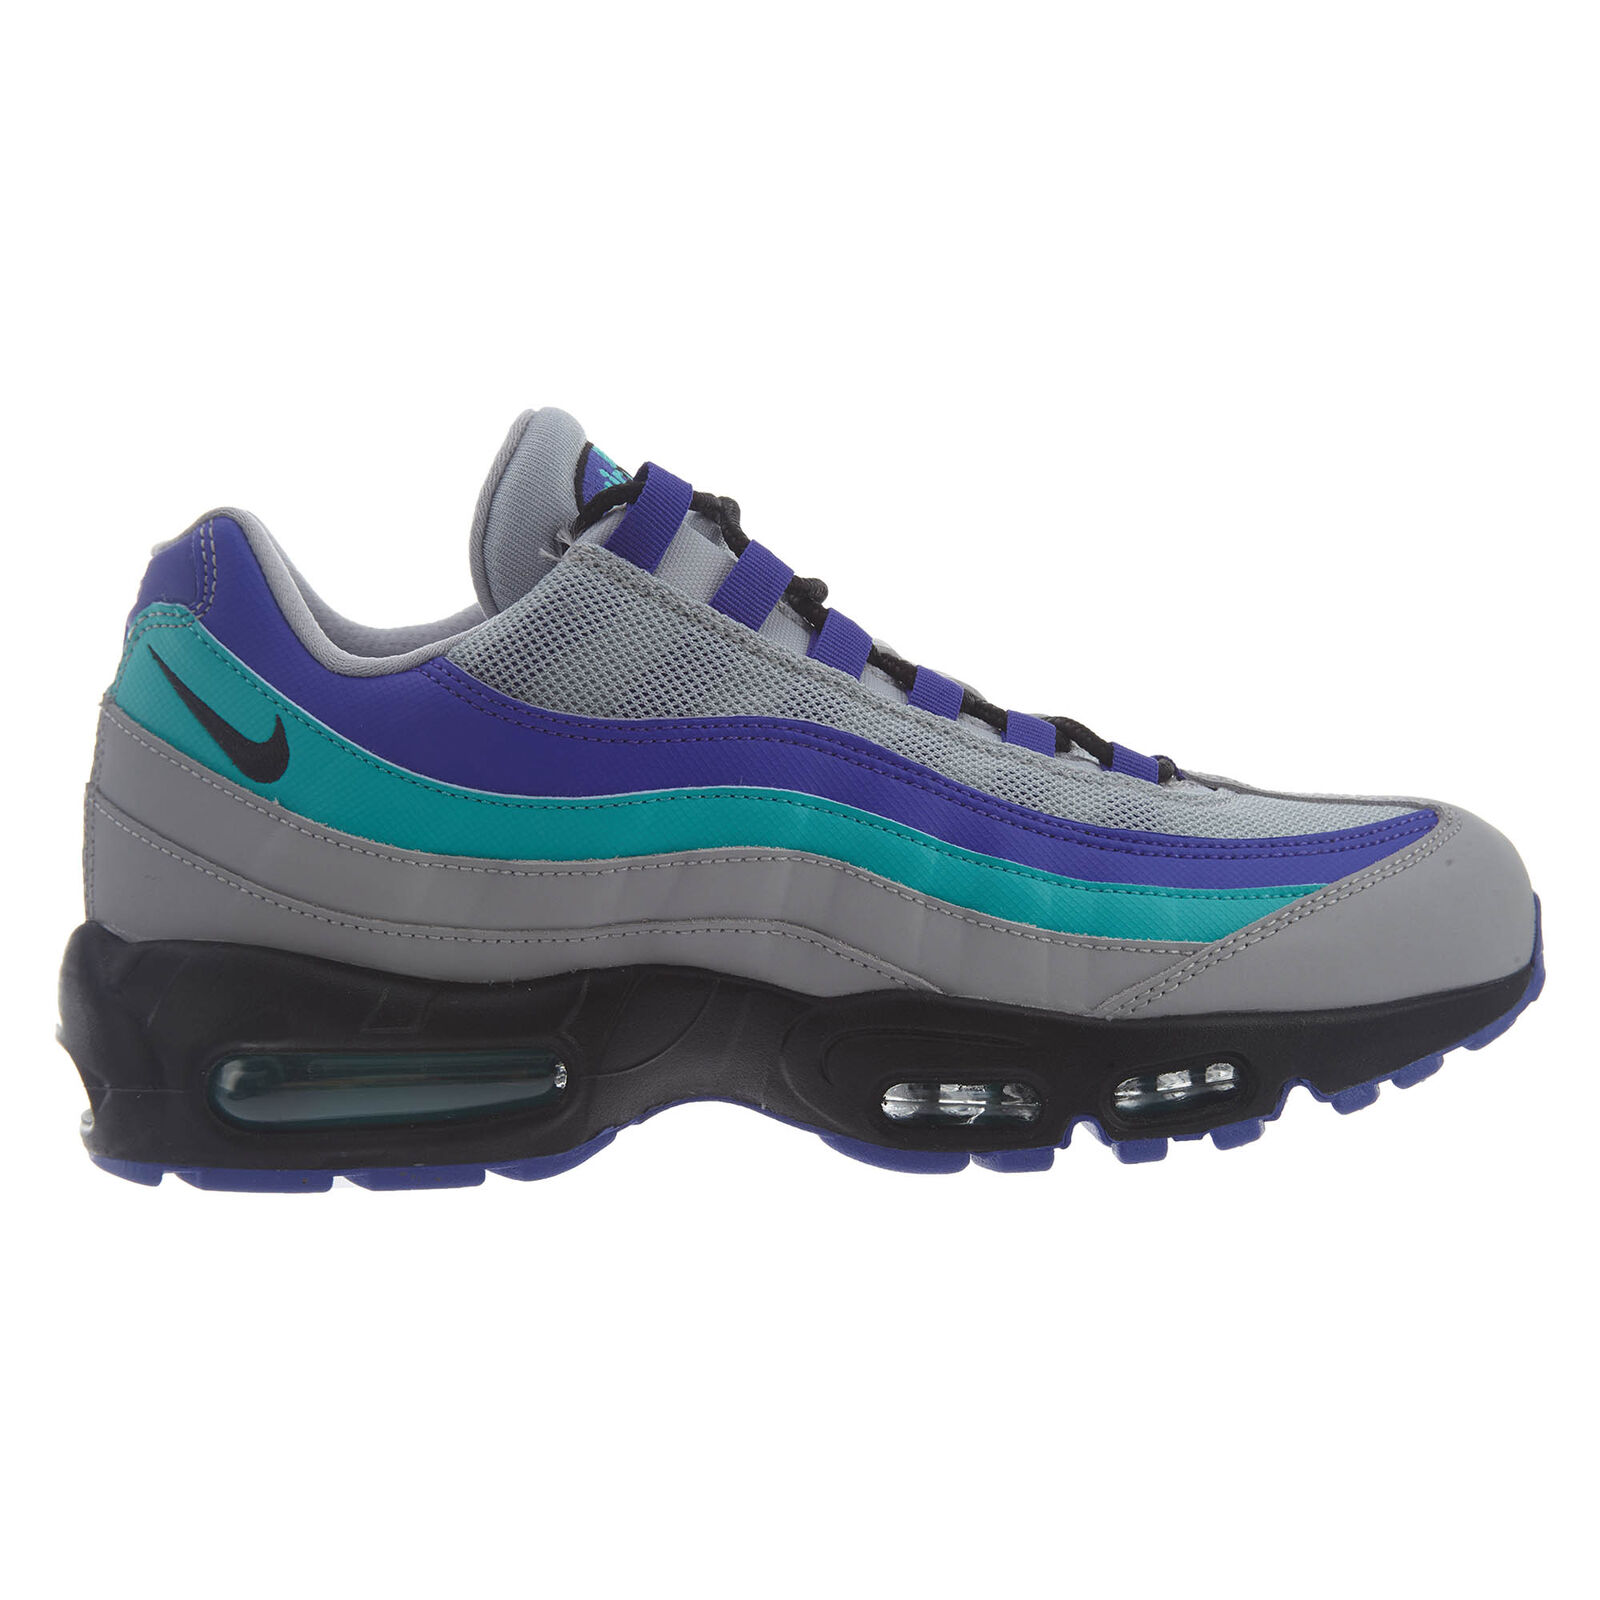 Nike Air Max 95 OG Aqua Mens AT2865-001 Grey Indigo Burst Running shoes Size 9.5